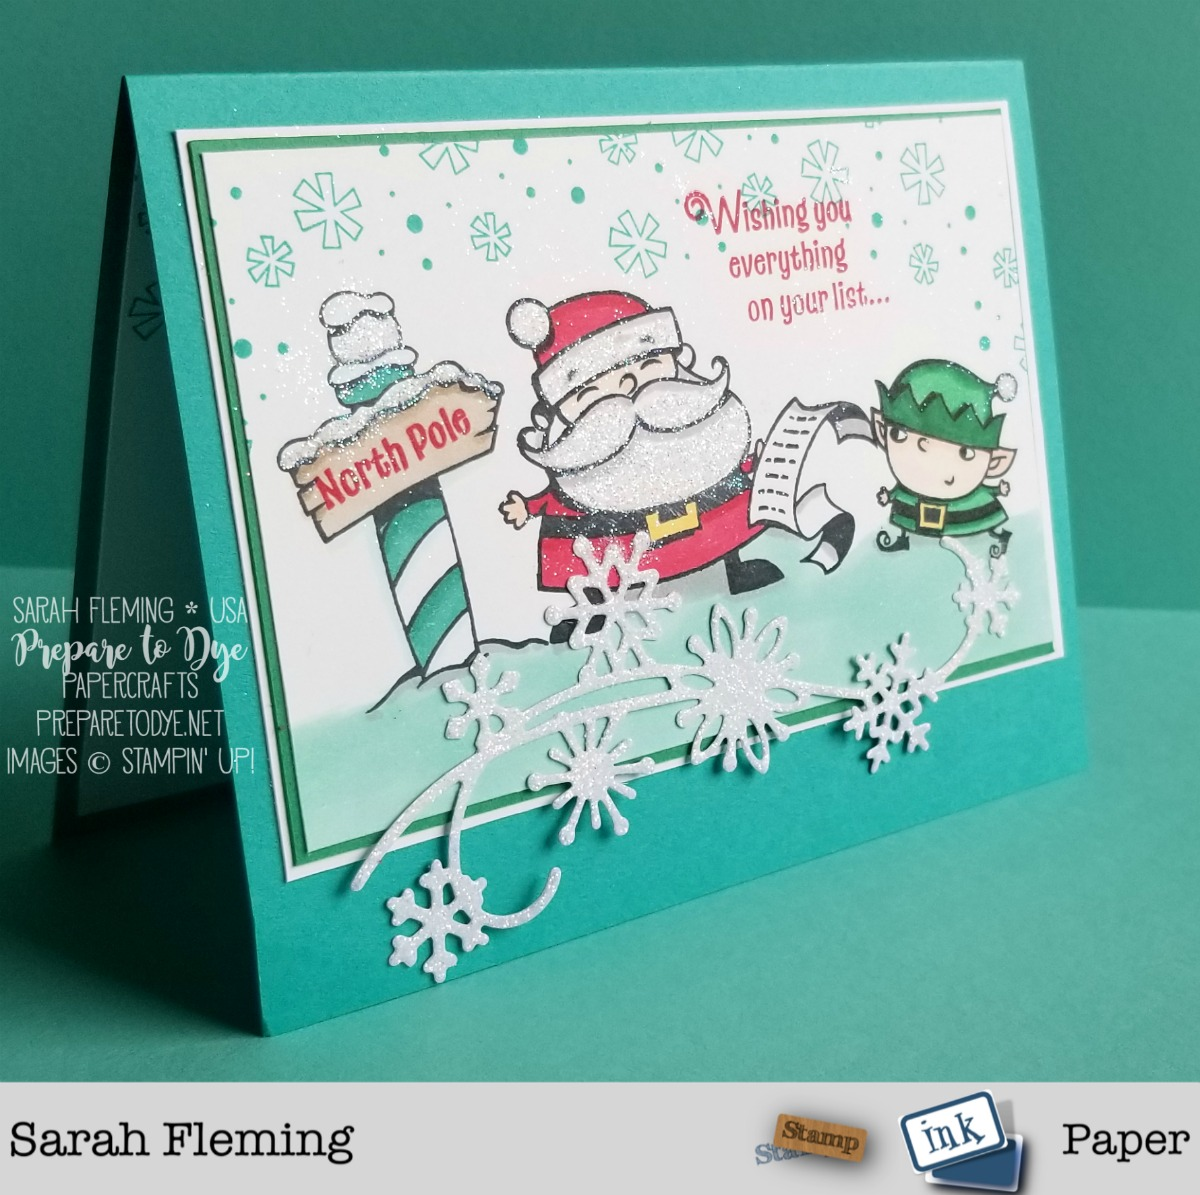 Stampin' Up! handmade holiday Christmas card using Signs of Santa stamp set with Stampin' Blends alcohol markers, Candy Cane Season stamps, and Snowfall Thinlits - Sarah Fleming - Prepare to Dye Papercrafts